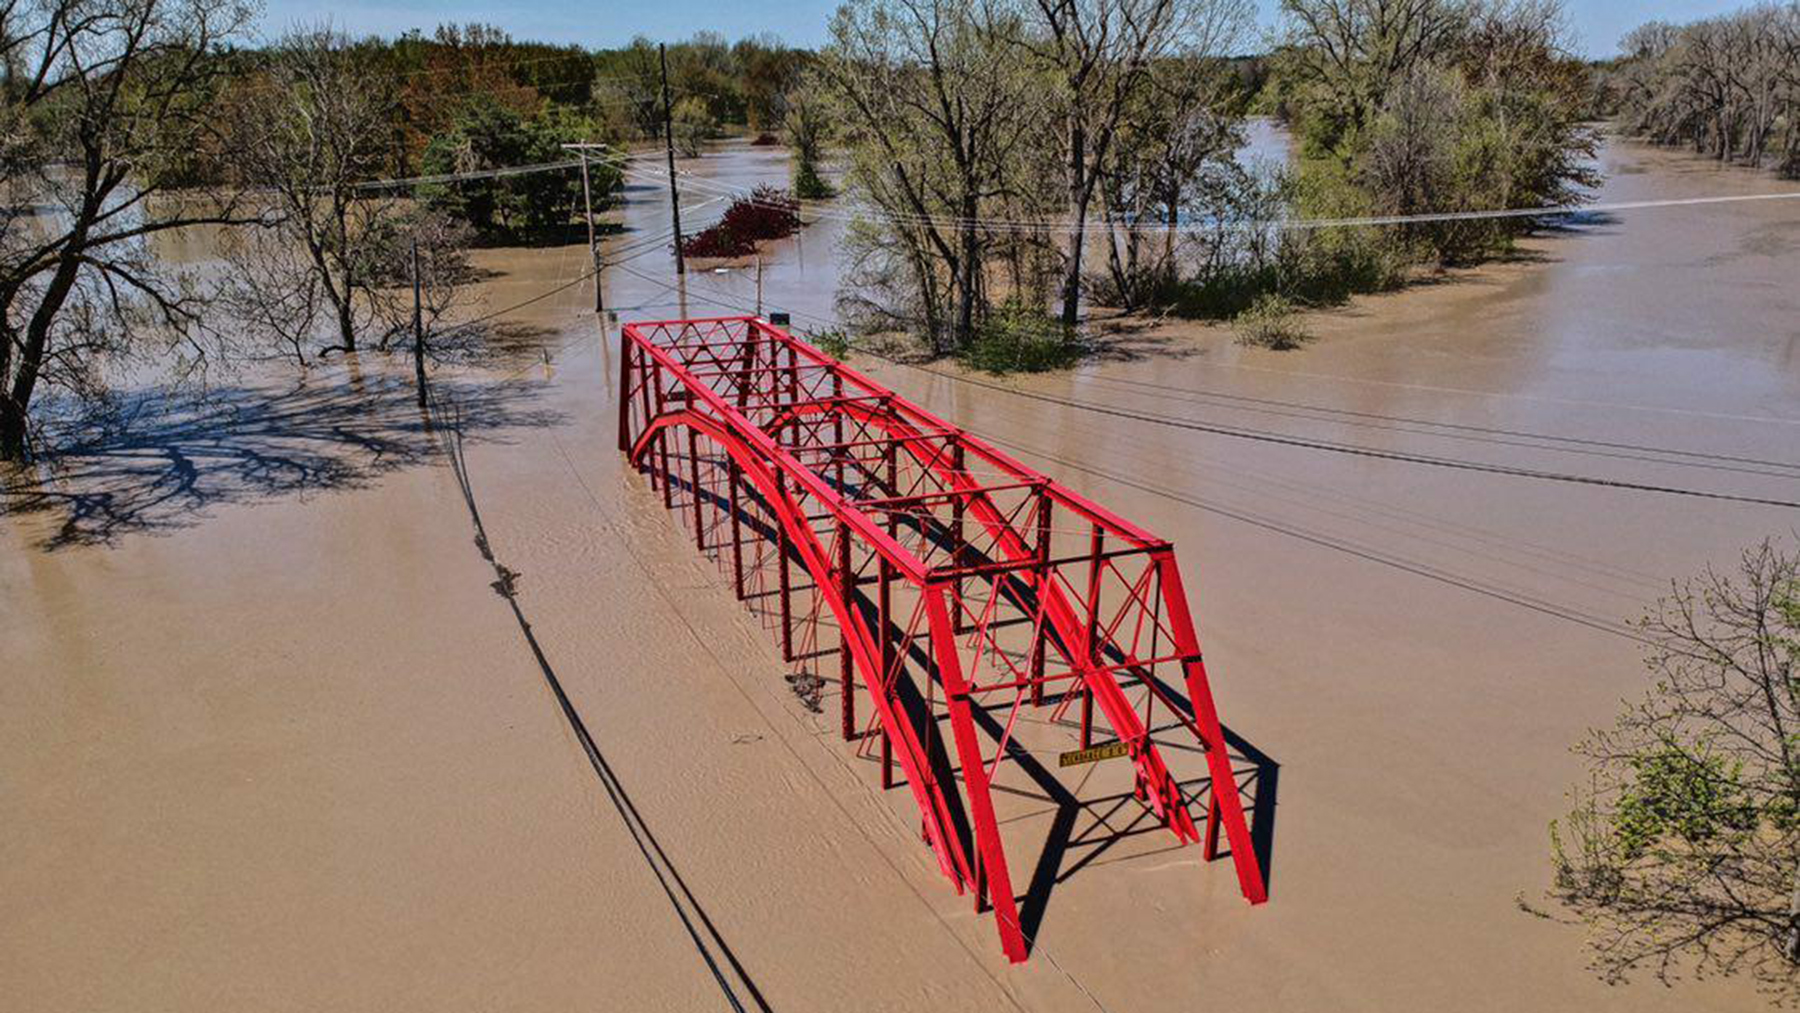 A bridge flooded after heavy rains in Midland, Michigan. (Photo courtesy of the city of Midland)